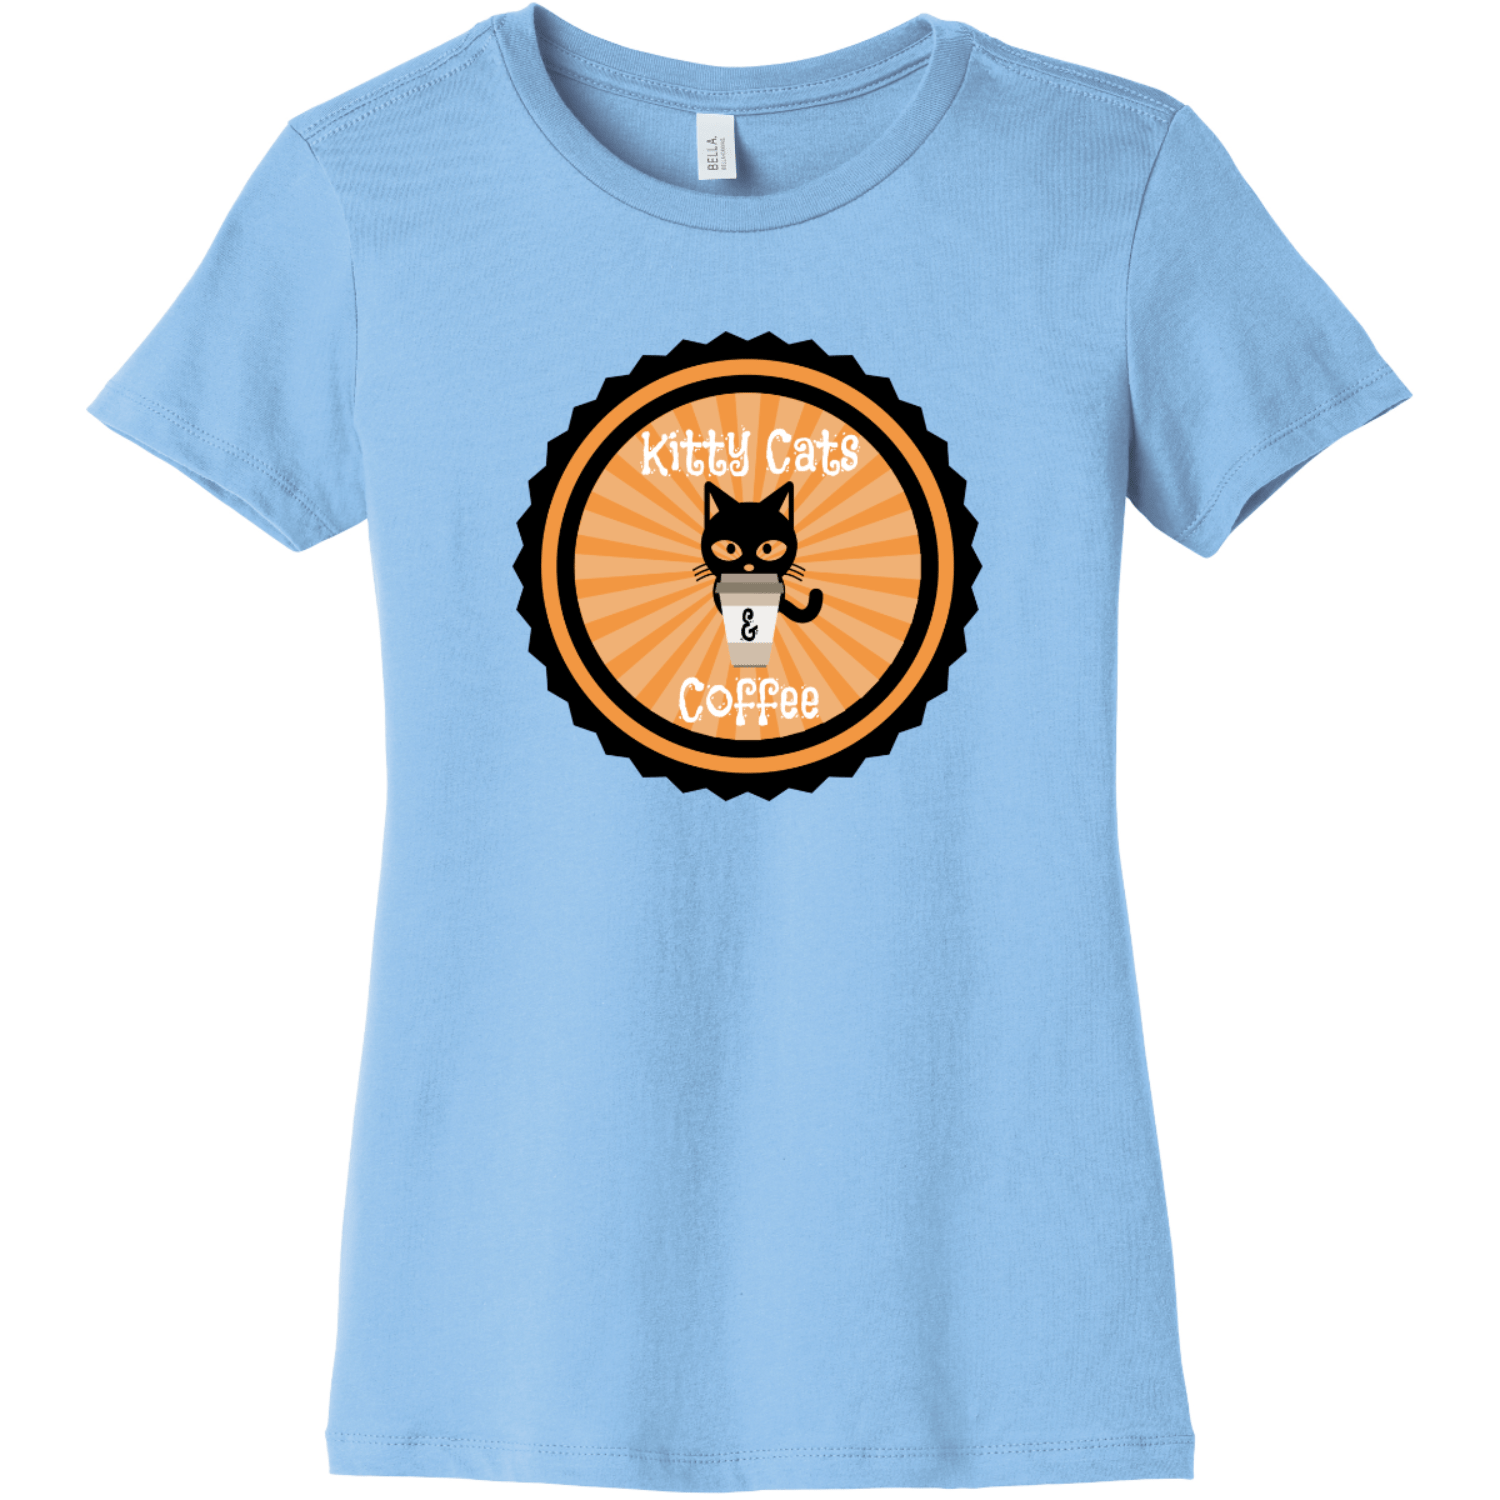 Kitty Cats and Coffee Ladies T Shirt Baby Blue Bella Canvas 6004 Ladies The Favorite Tee